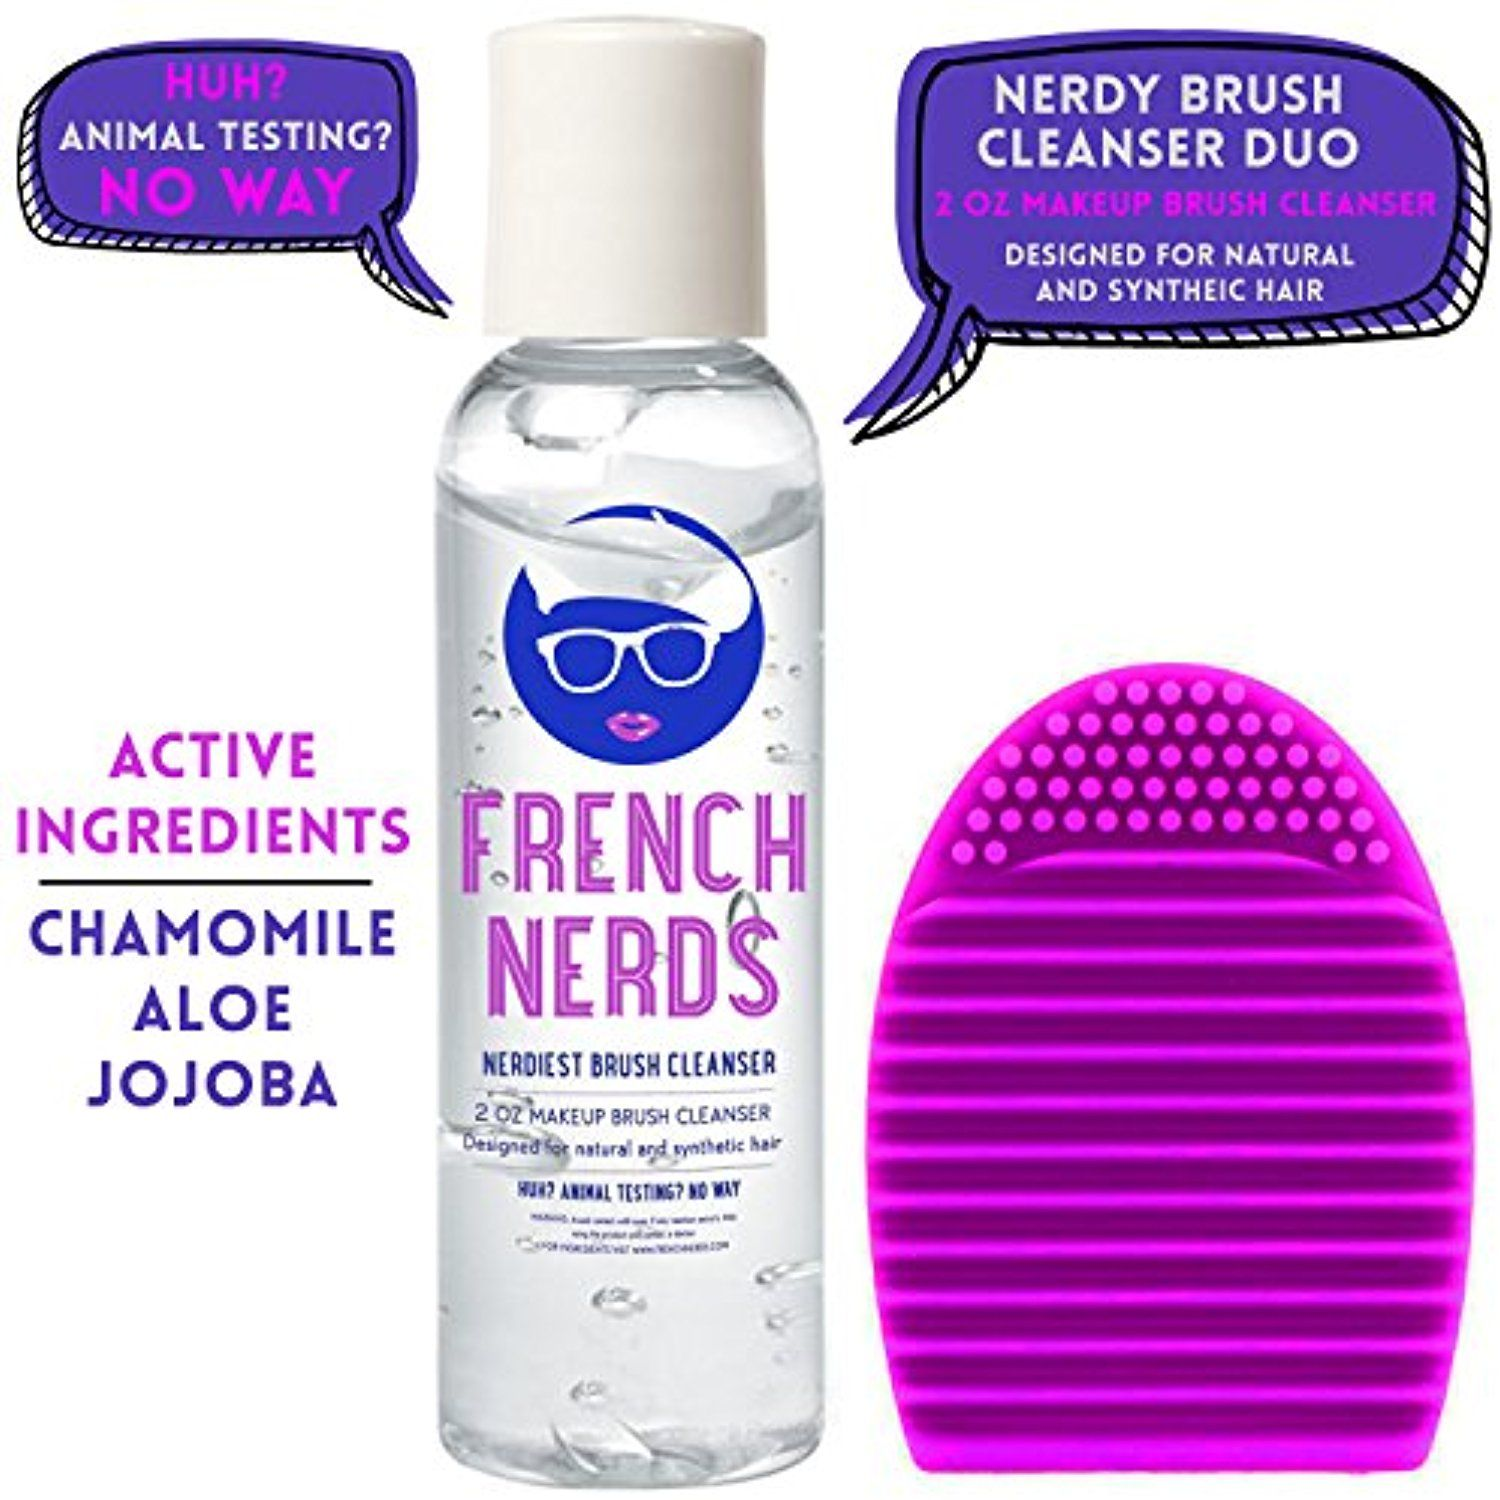 French Nerds Makeup Brush Cleaner and Brush Egg, 2oz